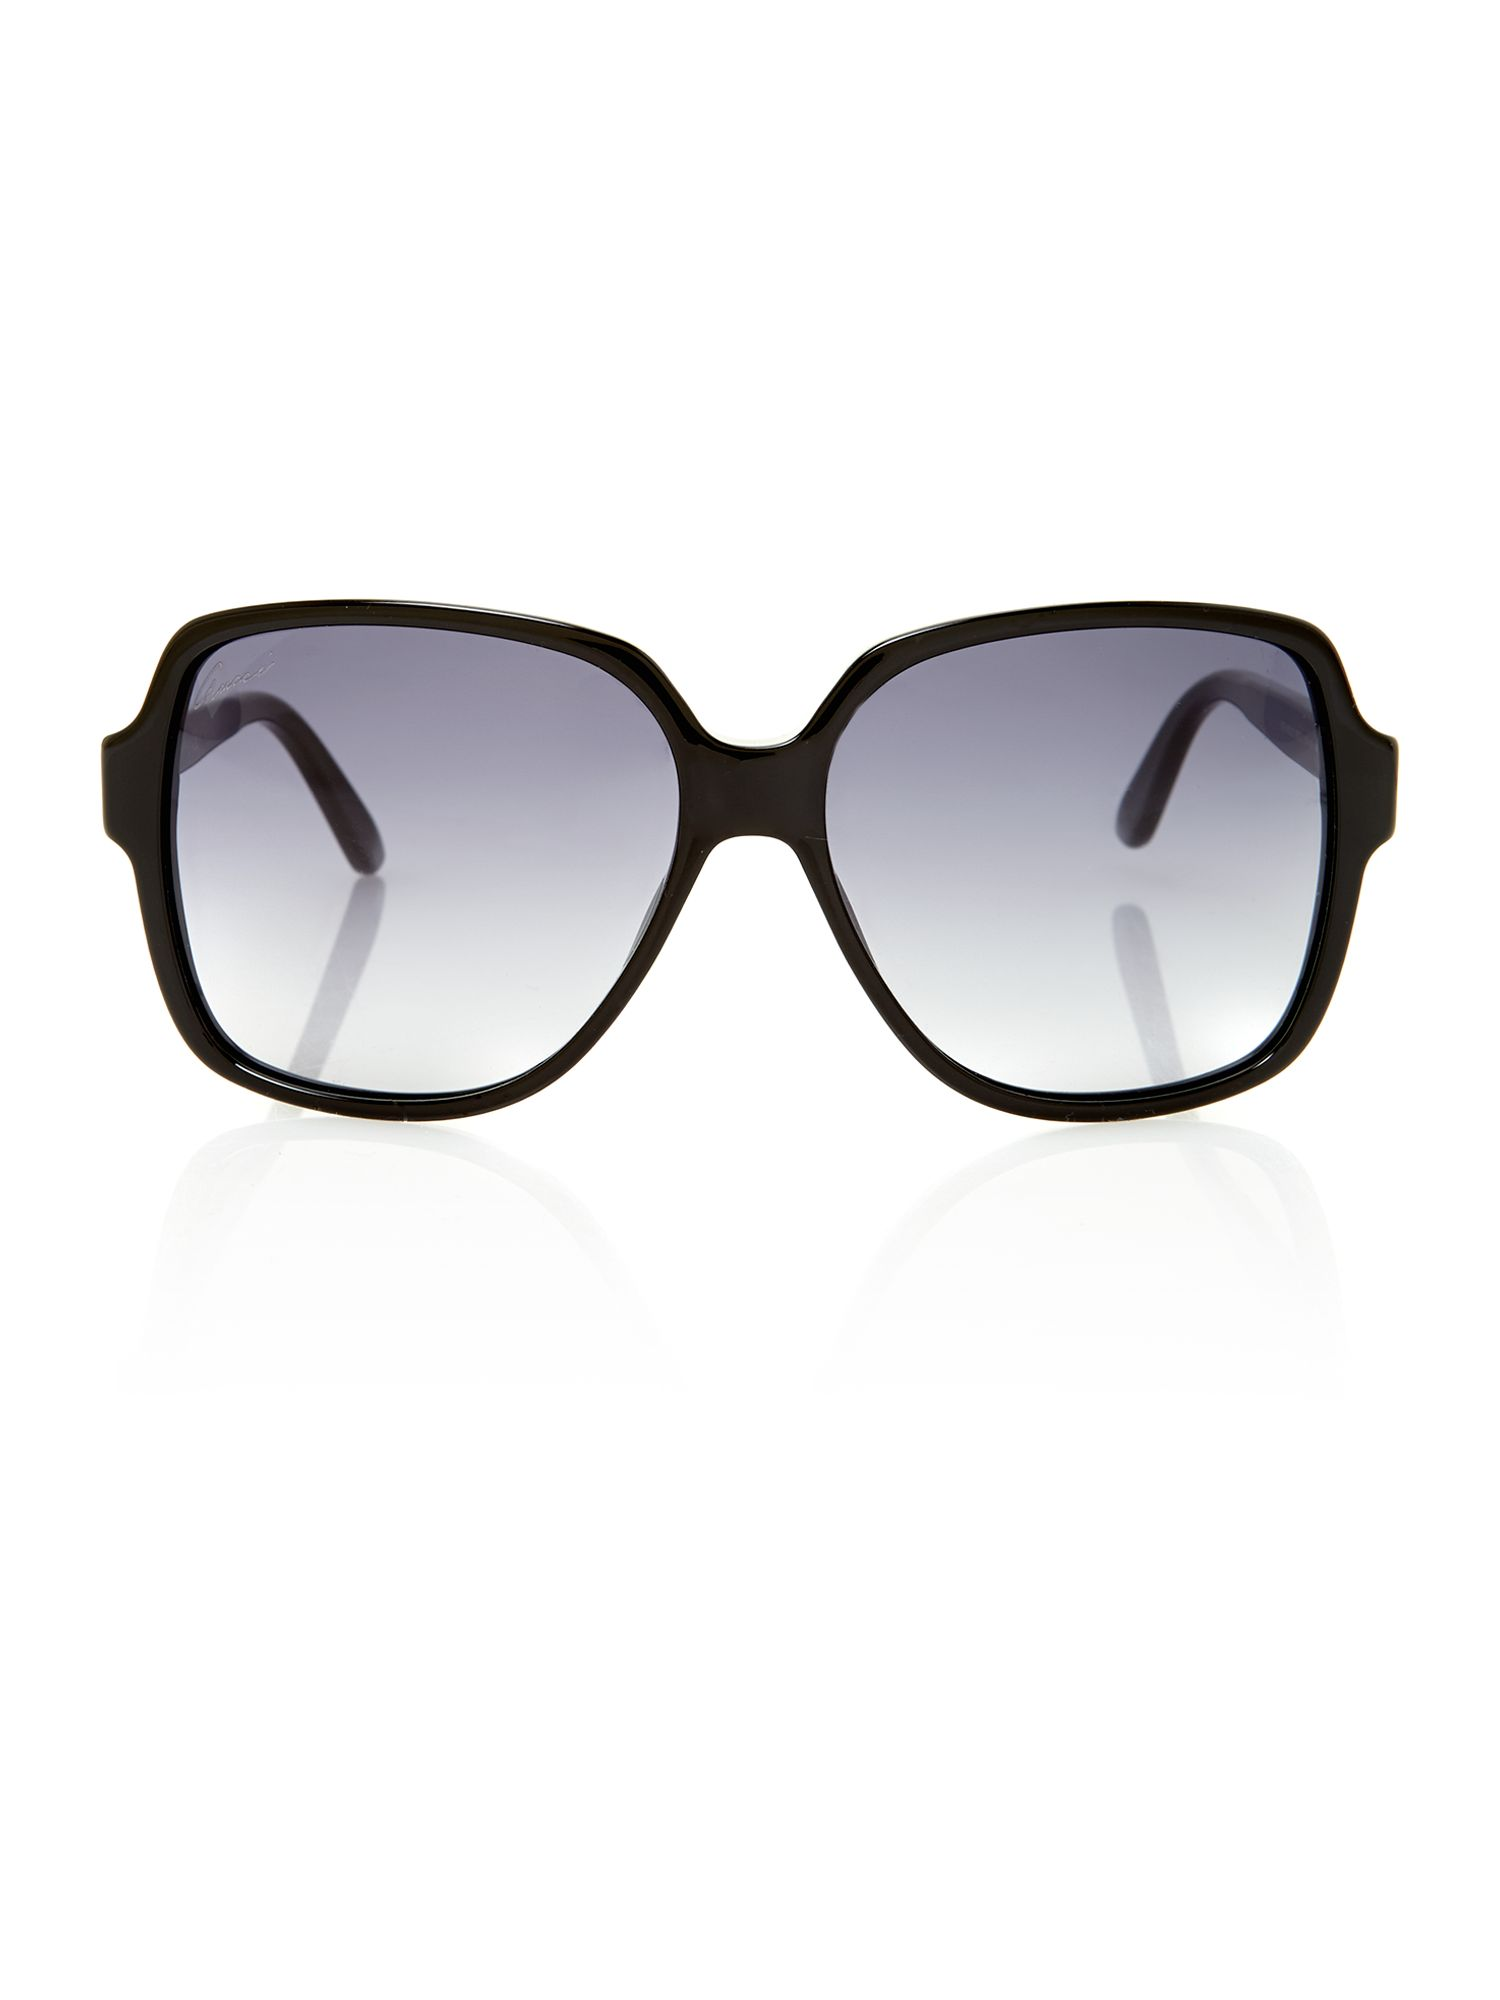 Ladies GG3582/S black square sunglasses